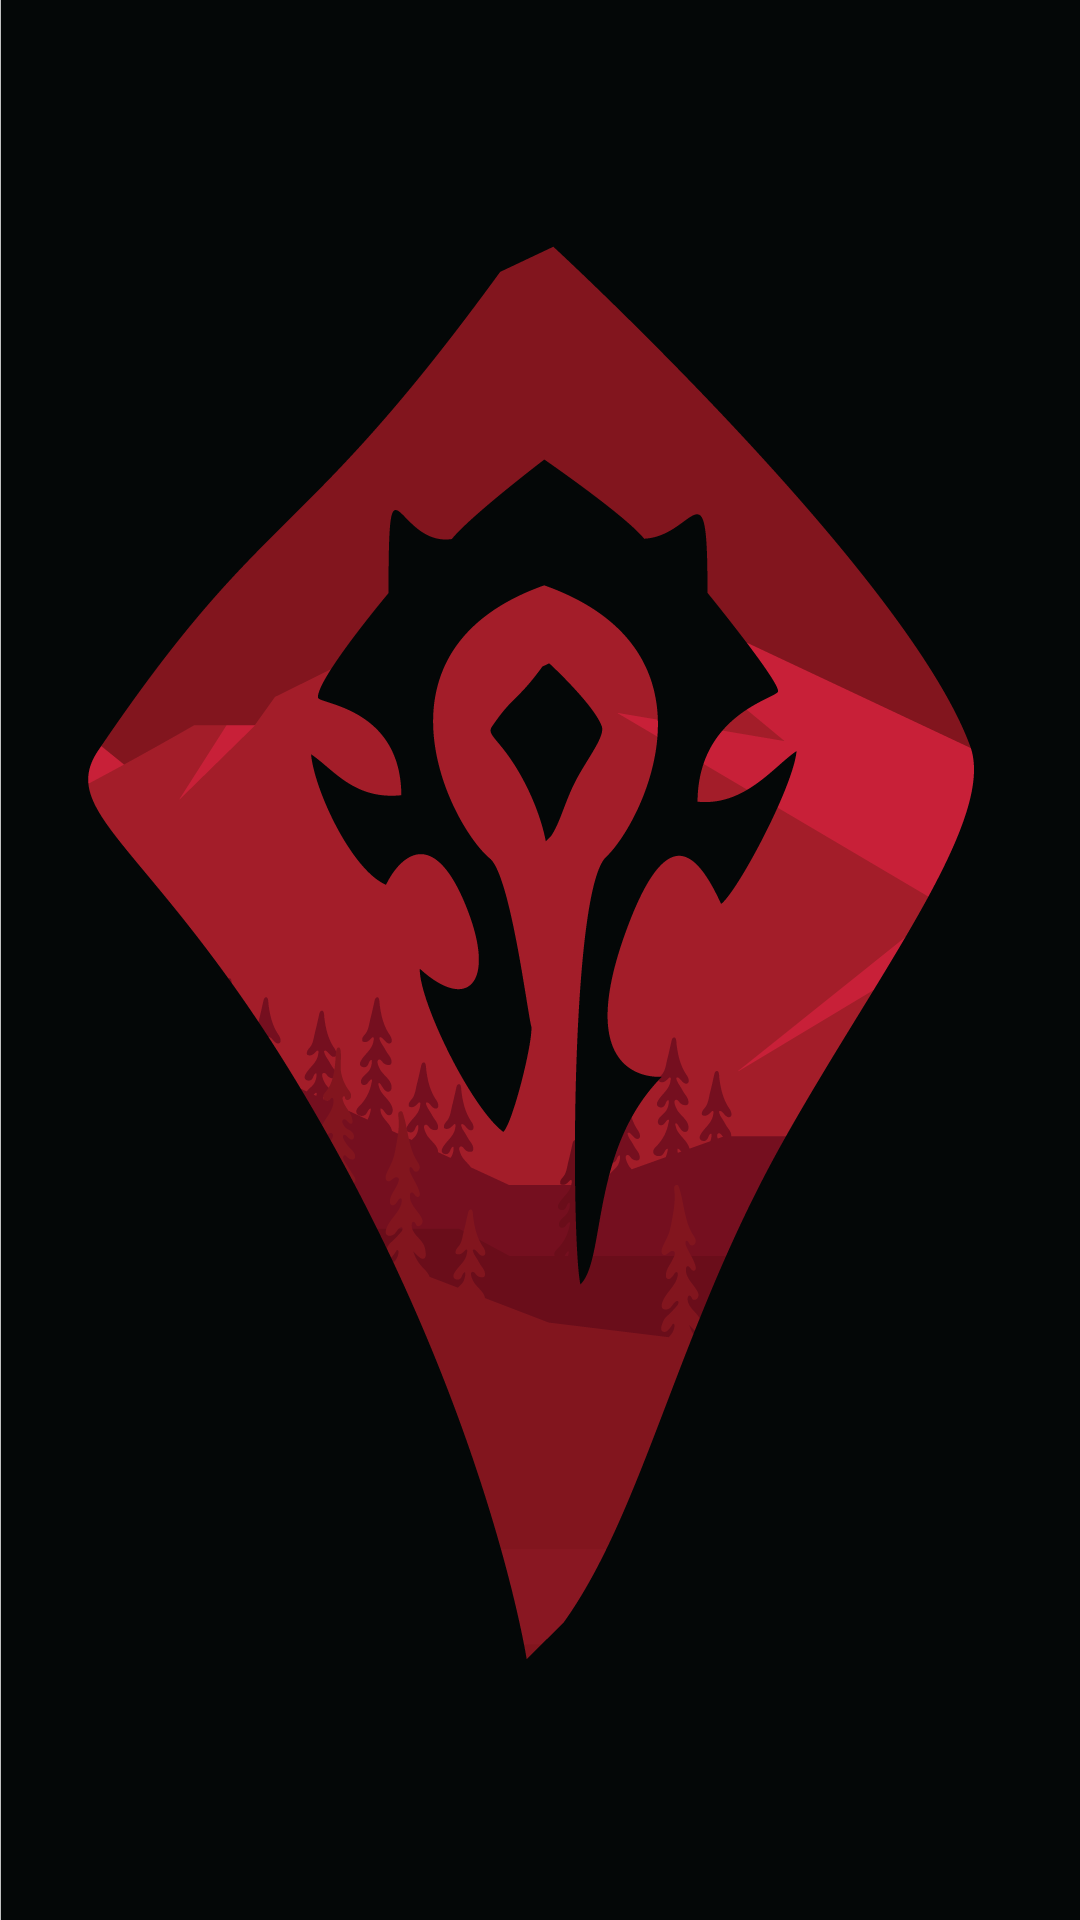 For The Horde World Of Warcraft 1080x1920 Trying Adobe Illustrator Art Worldofwarcraft World Of Warcraft Wallpaper Adobe Illustrator Art World Of Warcraft